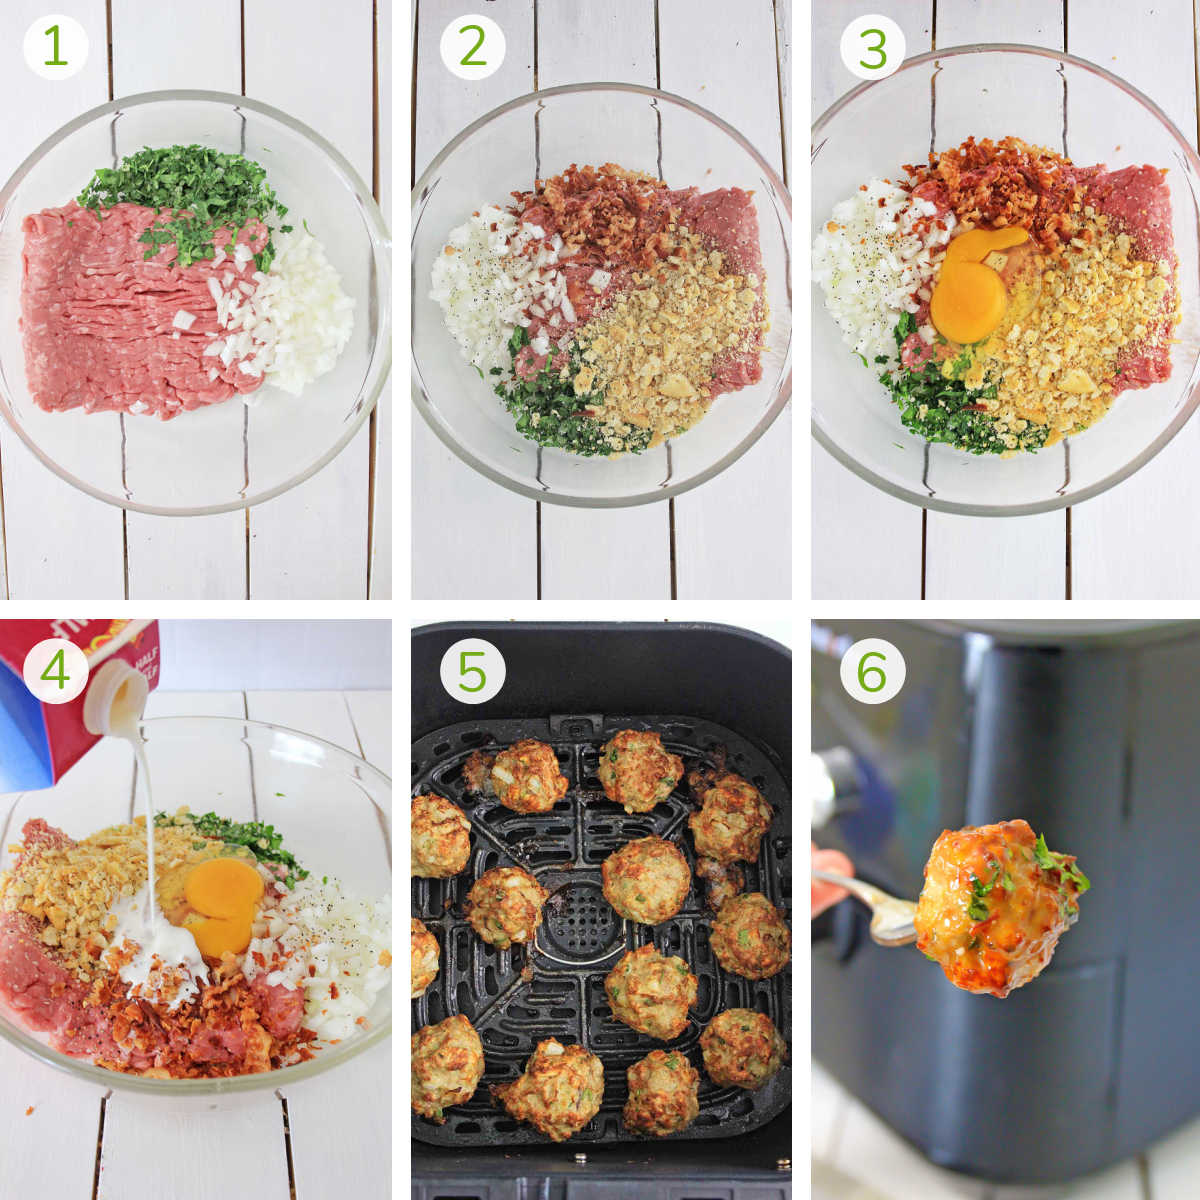 process photos showing how to make the chicken meatballs and then air fry them.